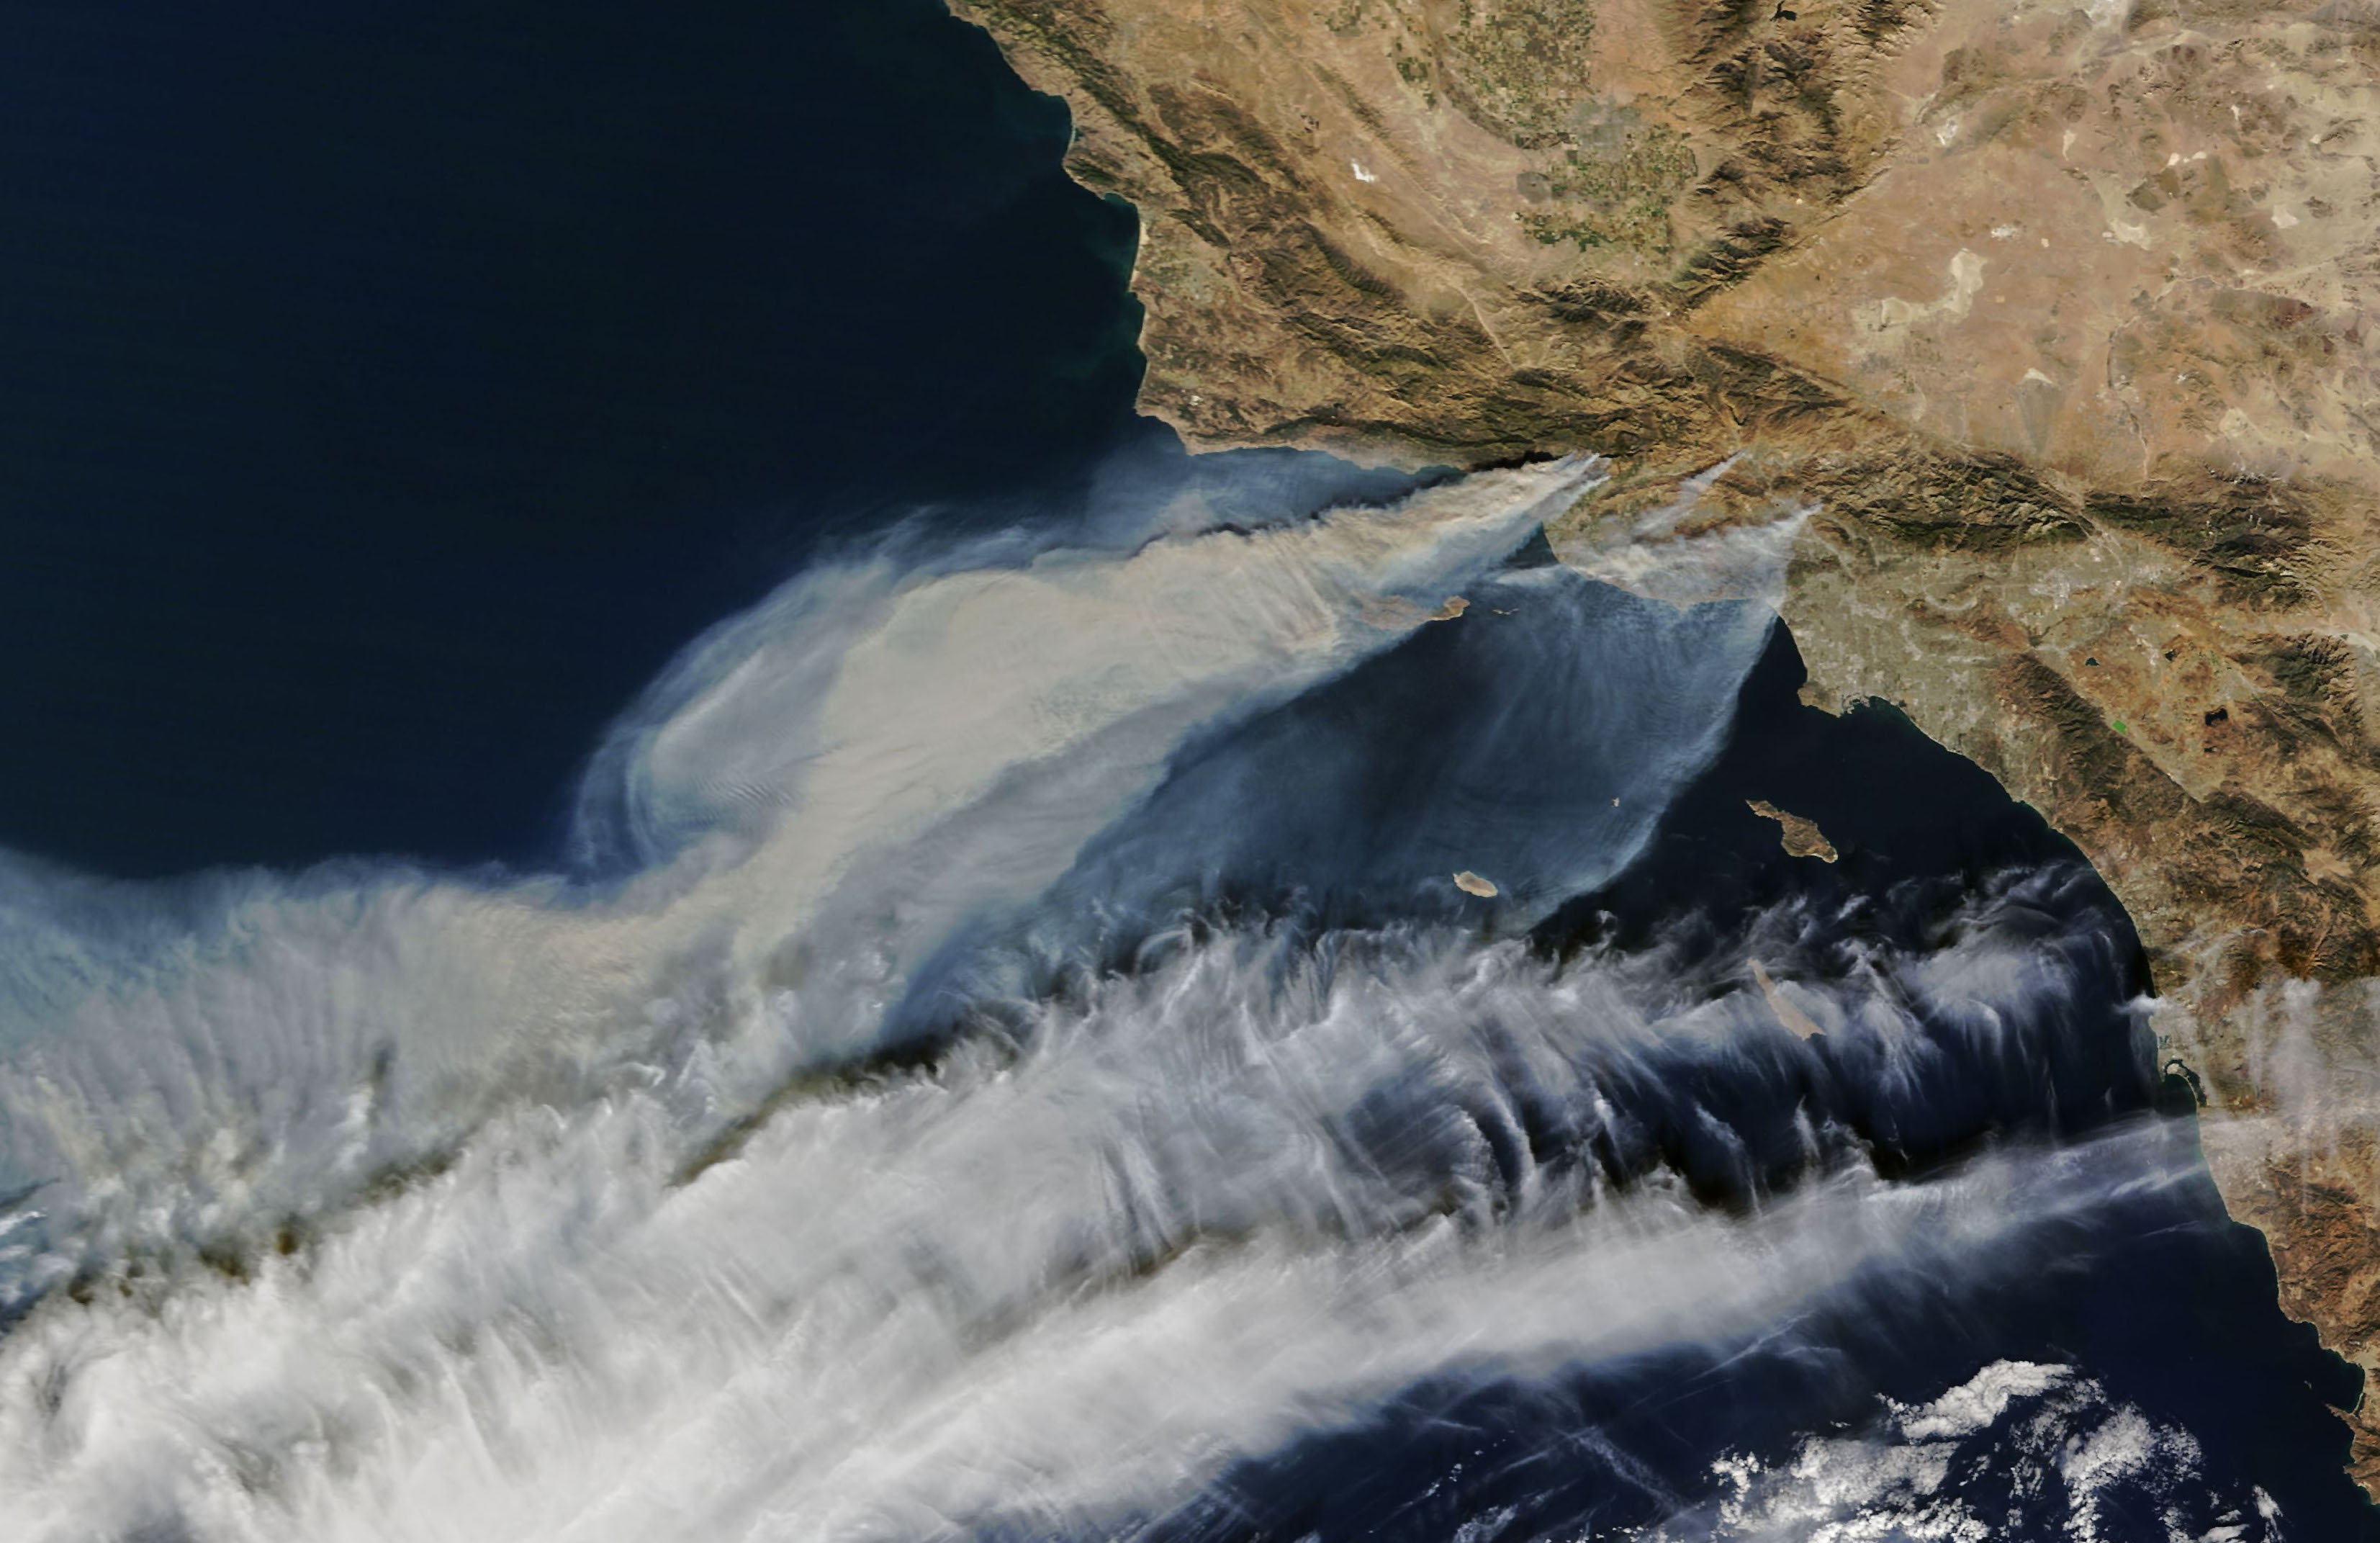 This week, multiple wildfires have burned through Southern California, and today's Image of the Day shows the smoke visible from space.